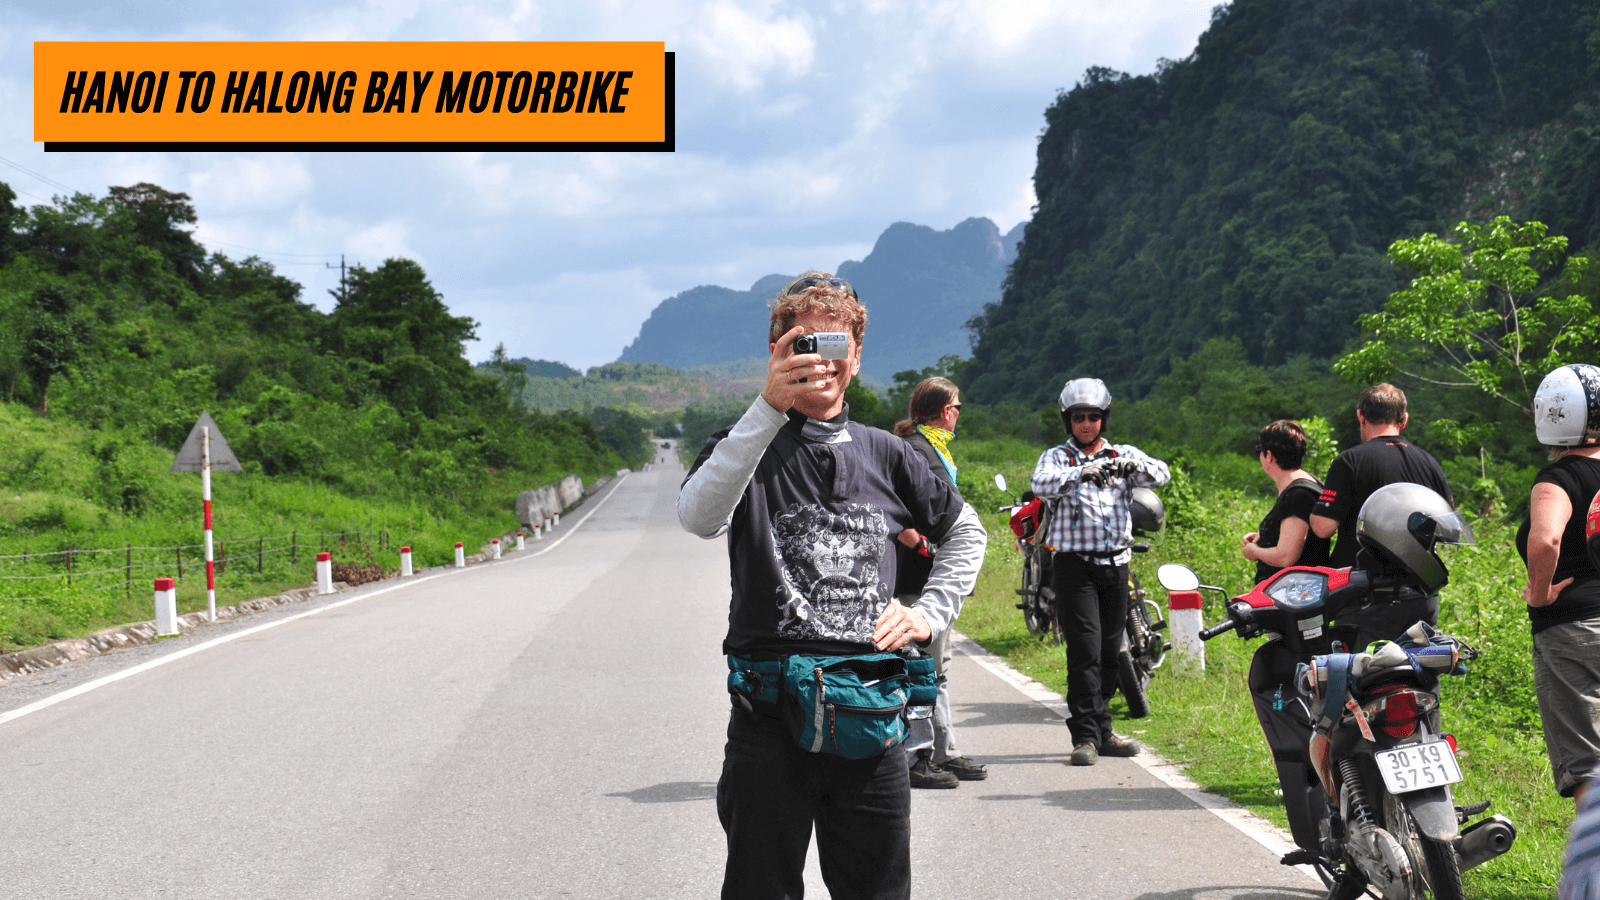 Hanoi to Halong bay motorbike